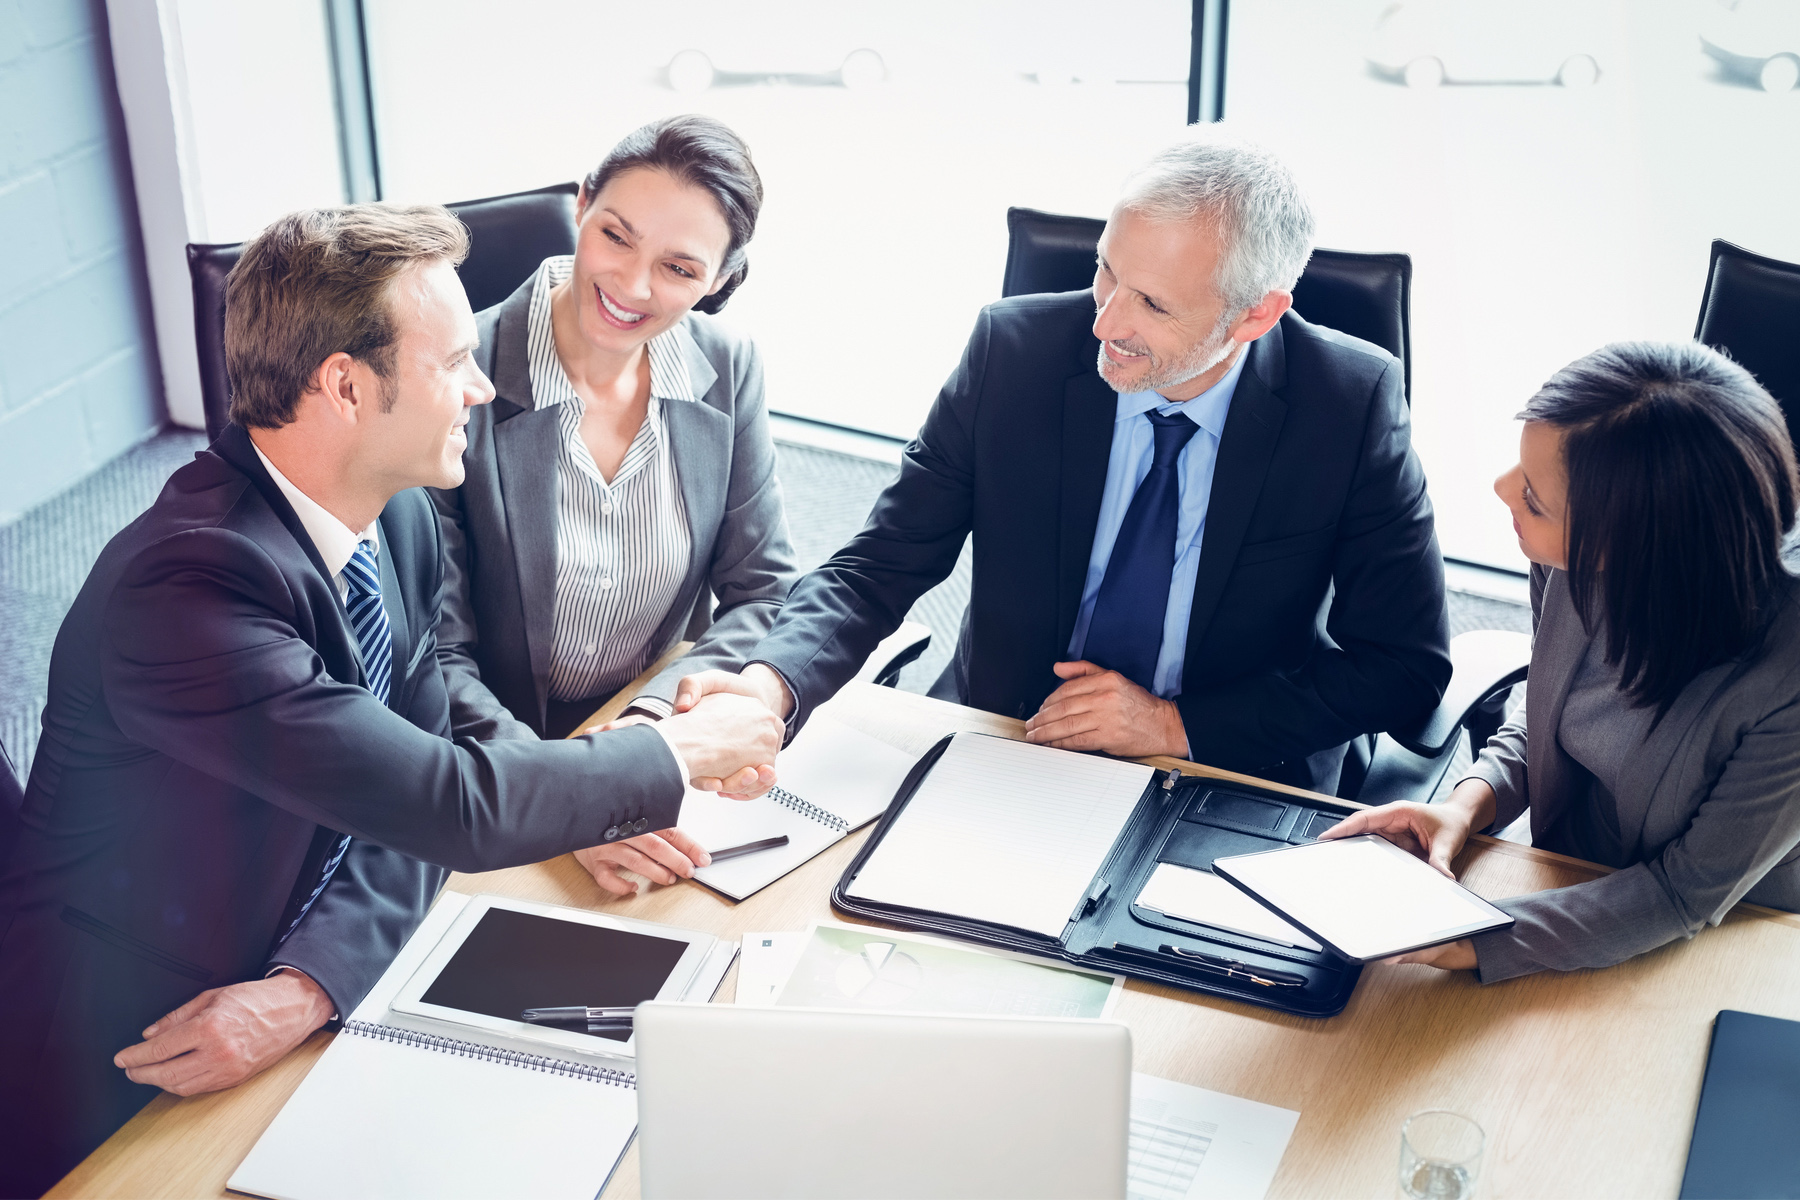 Handshake at a business meeting